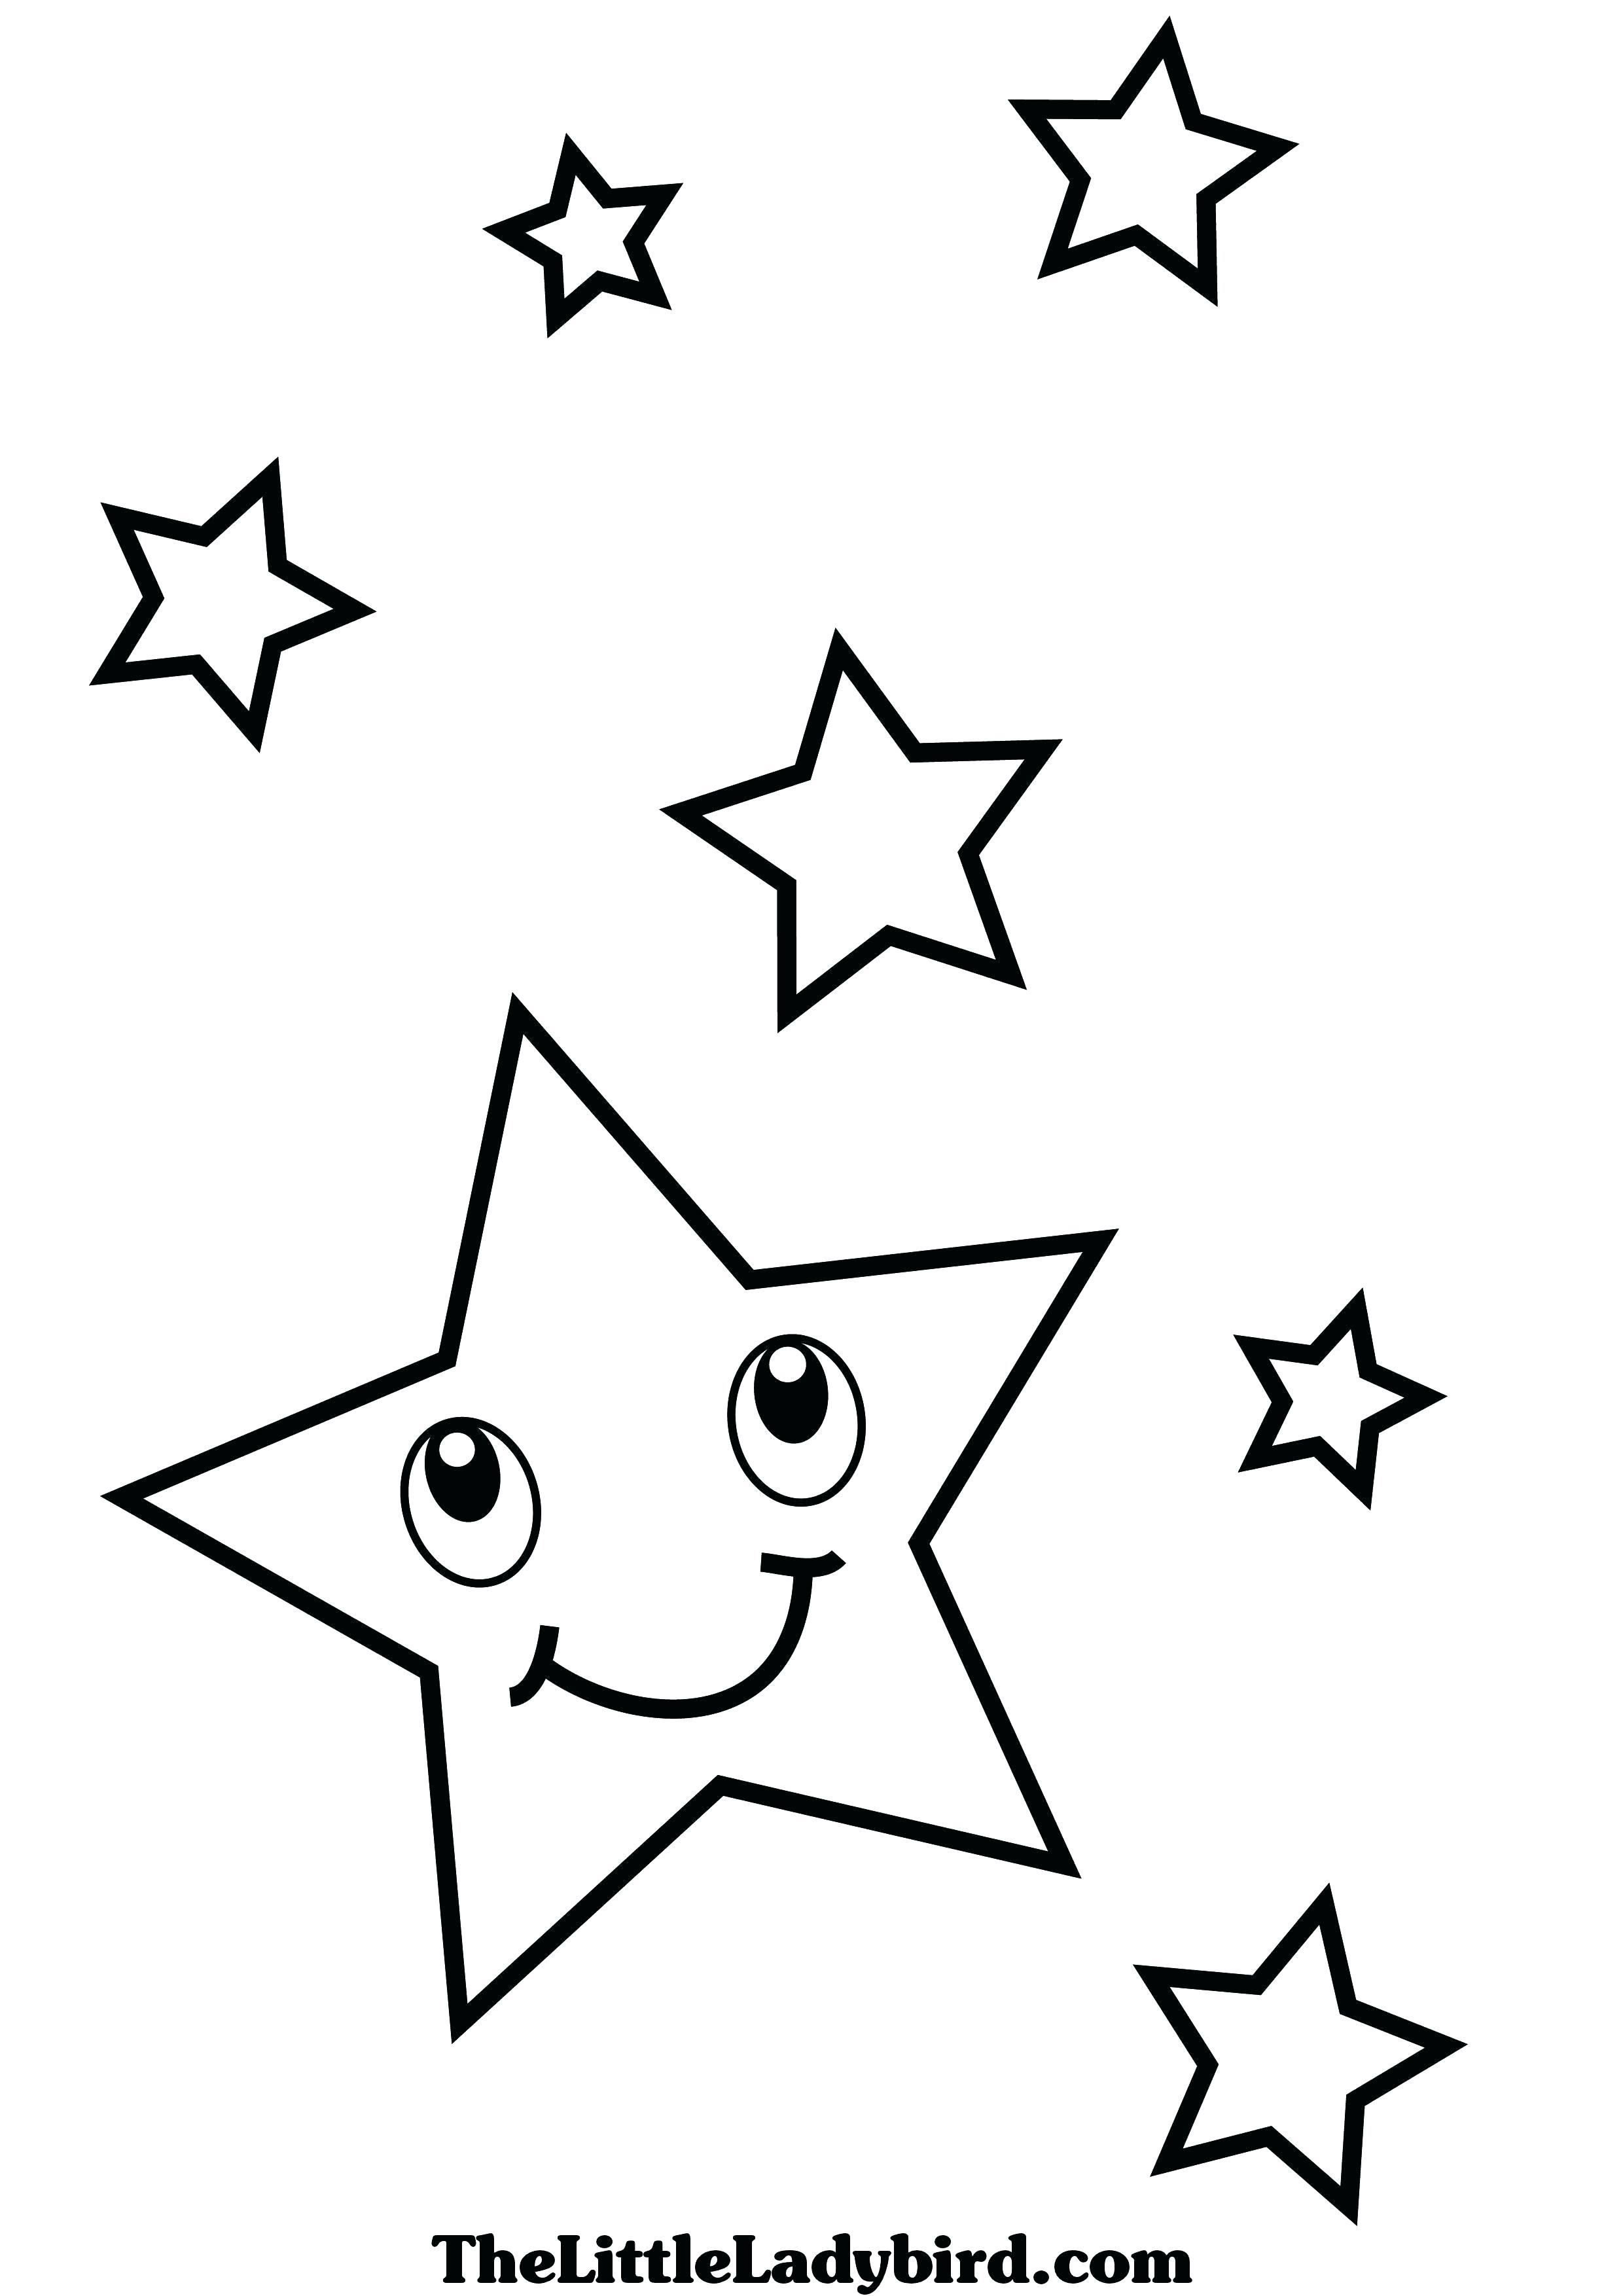 Shooting Star Coloring Page At Getcolorings